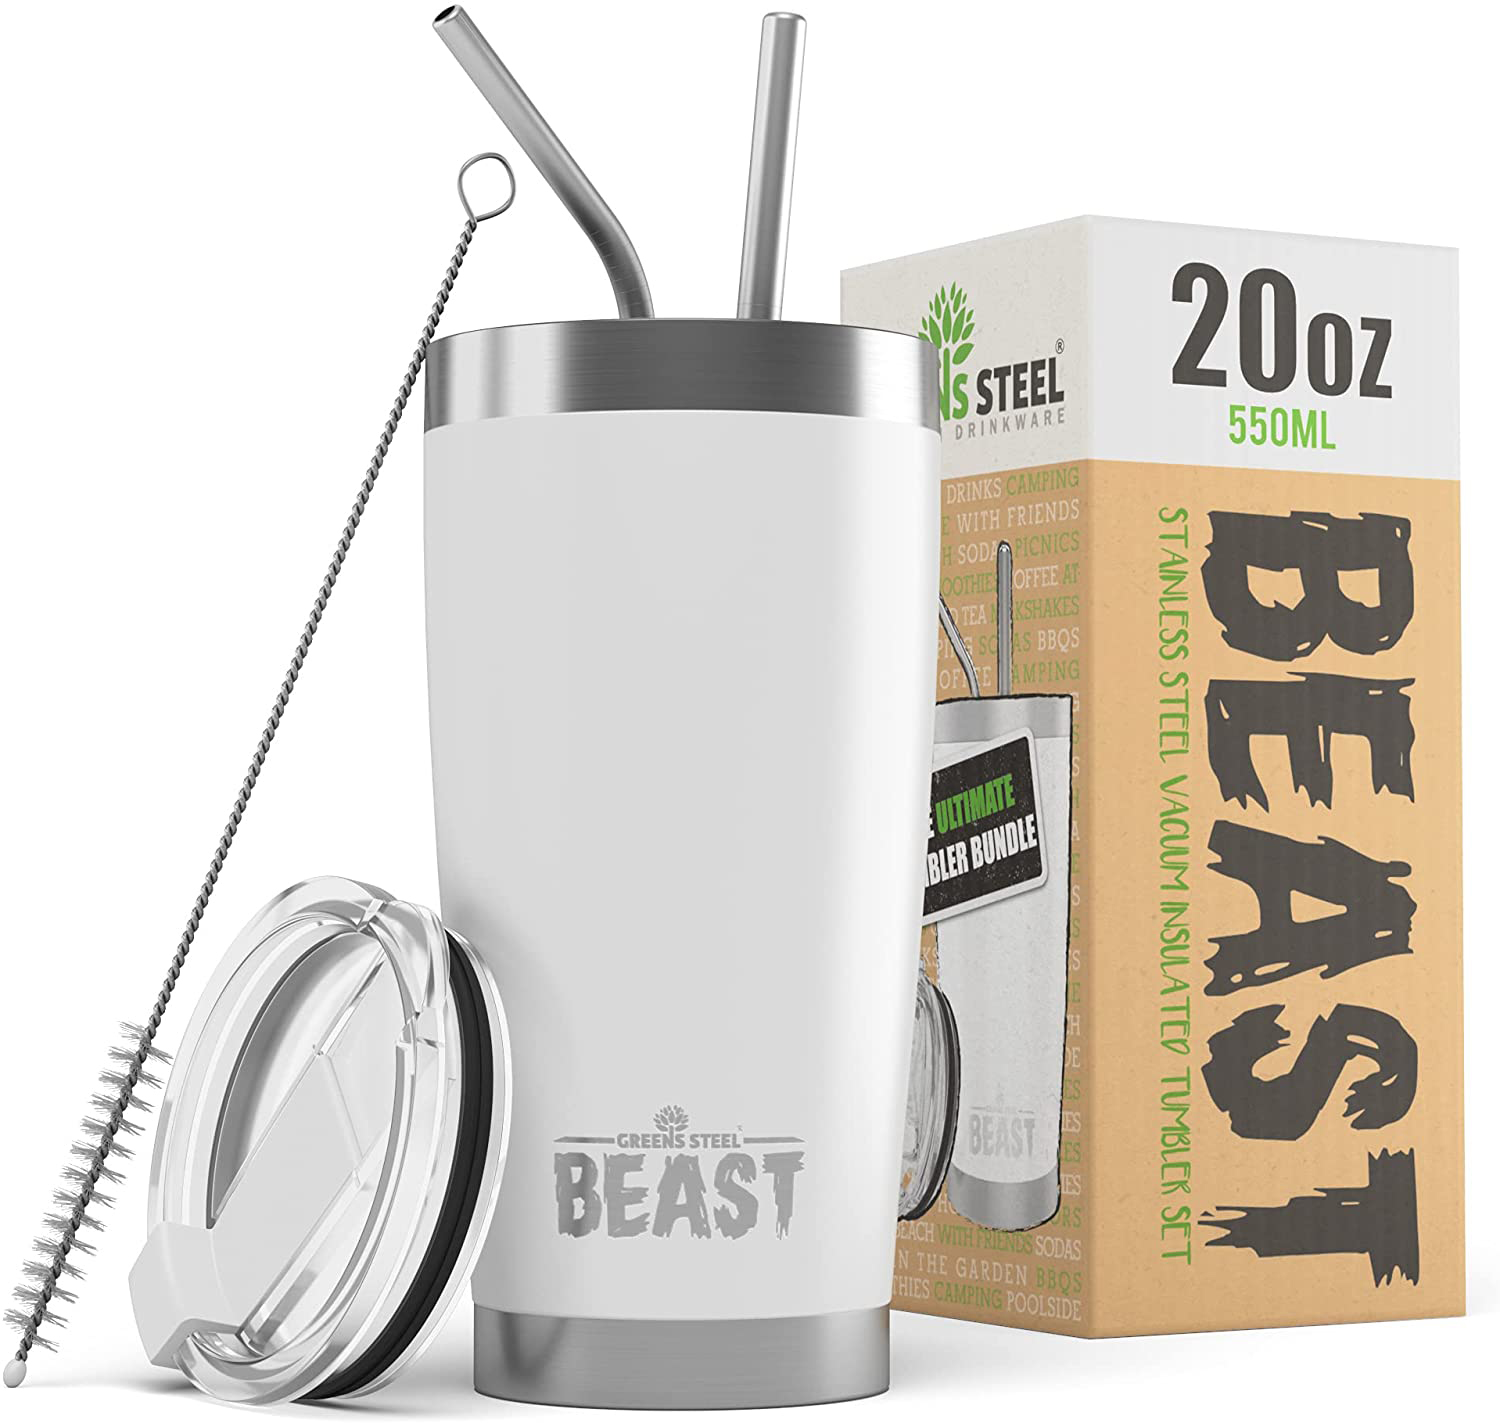 BEAST 20oz Stainless Steel Cup with 2 Straws